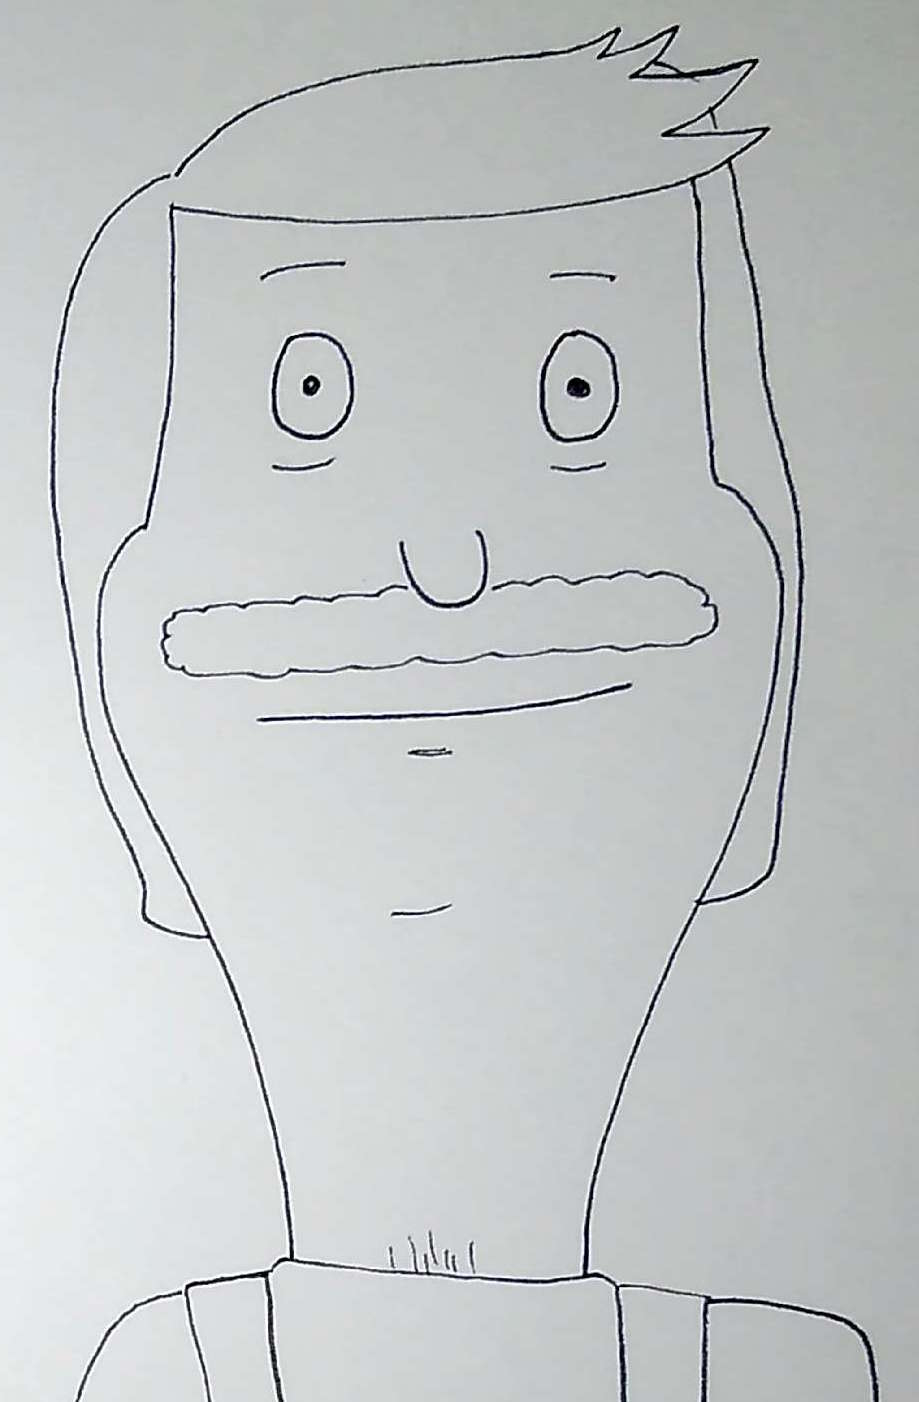 A sketch I drew of Bob from Bob's burger in pen. No color.